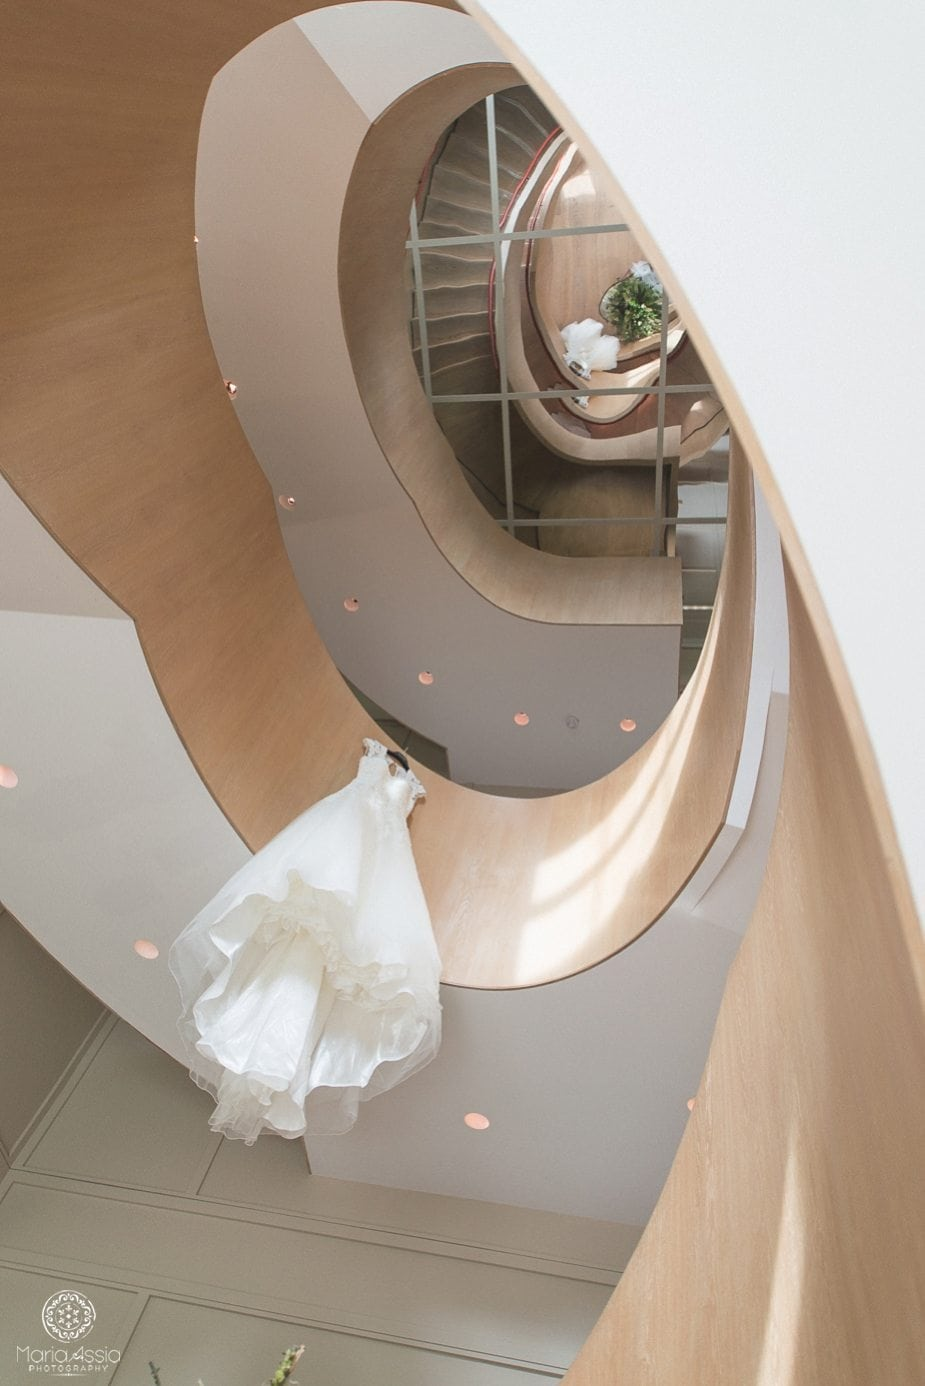 Wedding dress hanging from the spiral staircase at Coworth Park